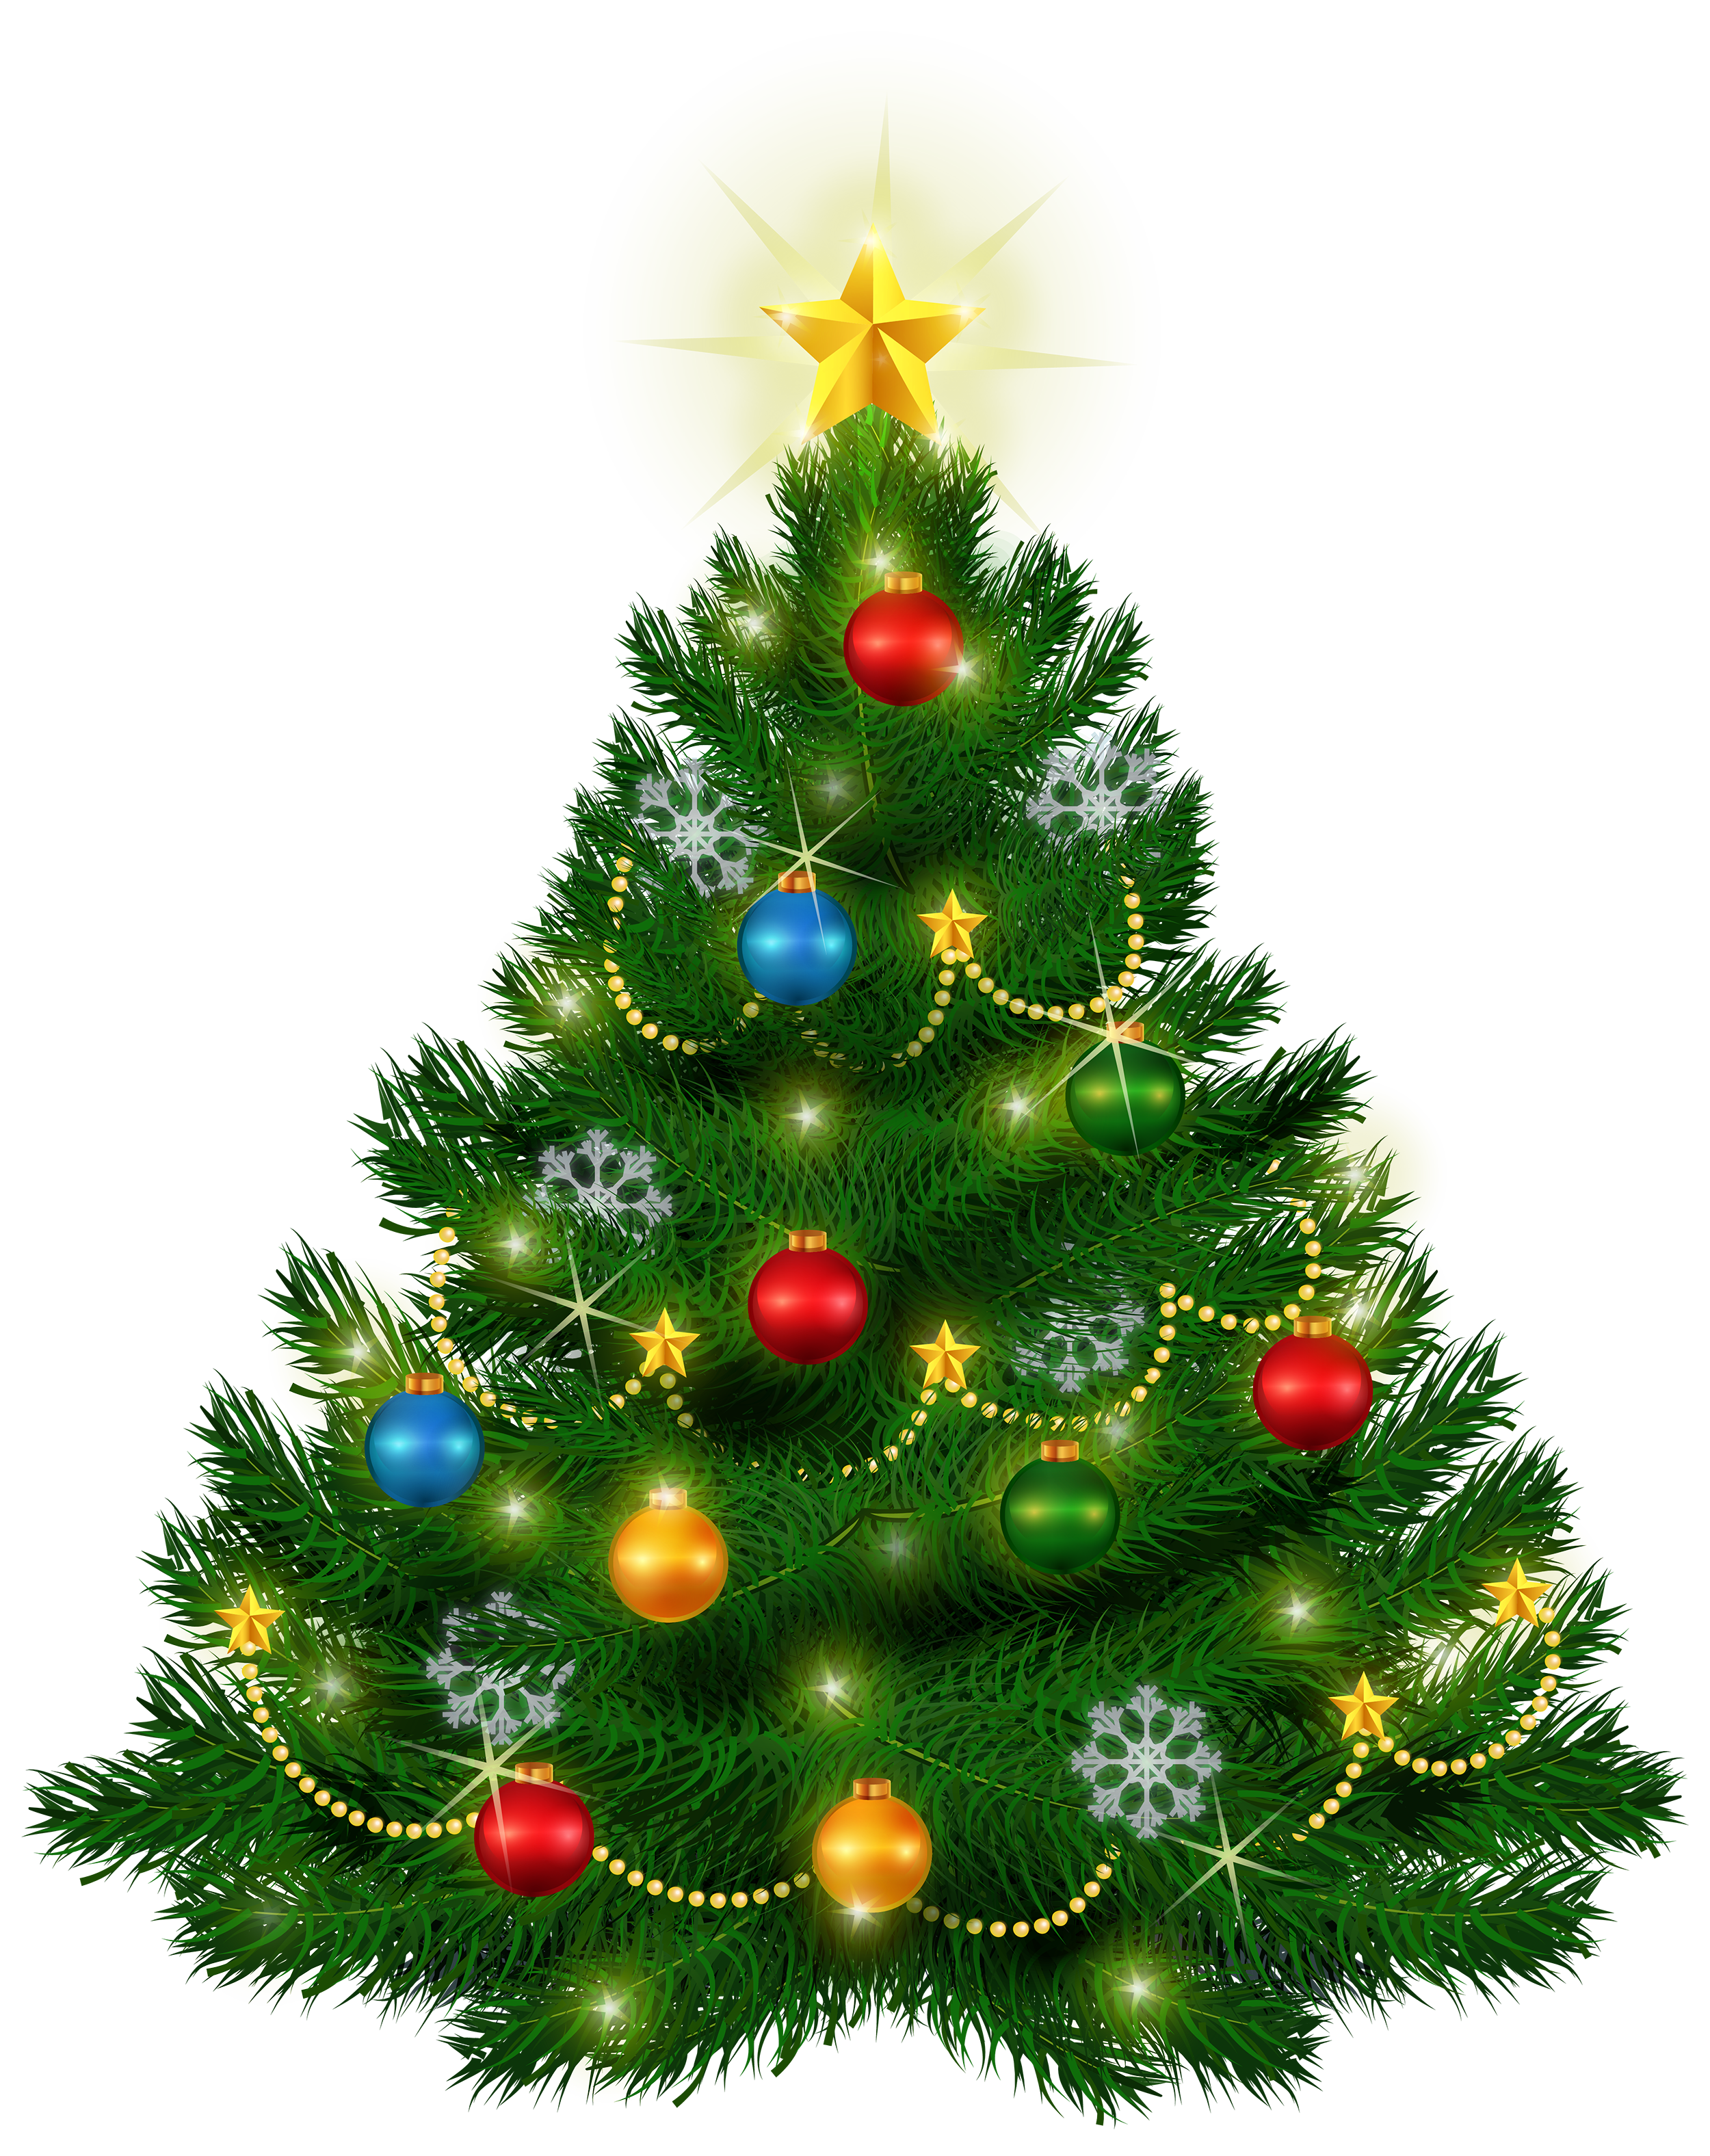 Clipart Christmas Tree.Christmas Tree Png Free Christmas Tree Png Transparent